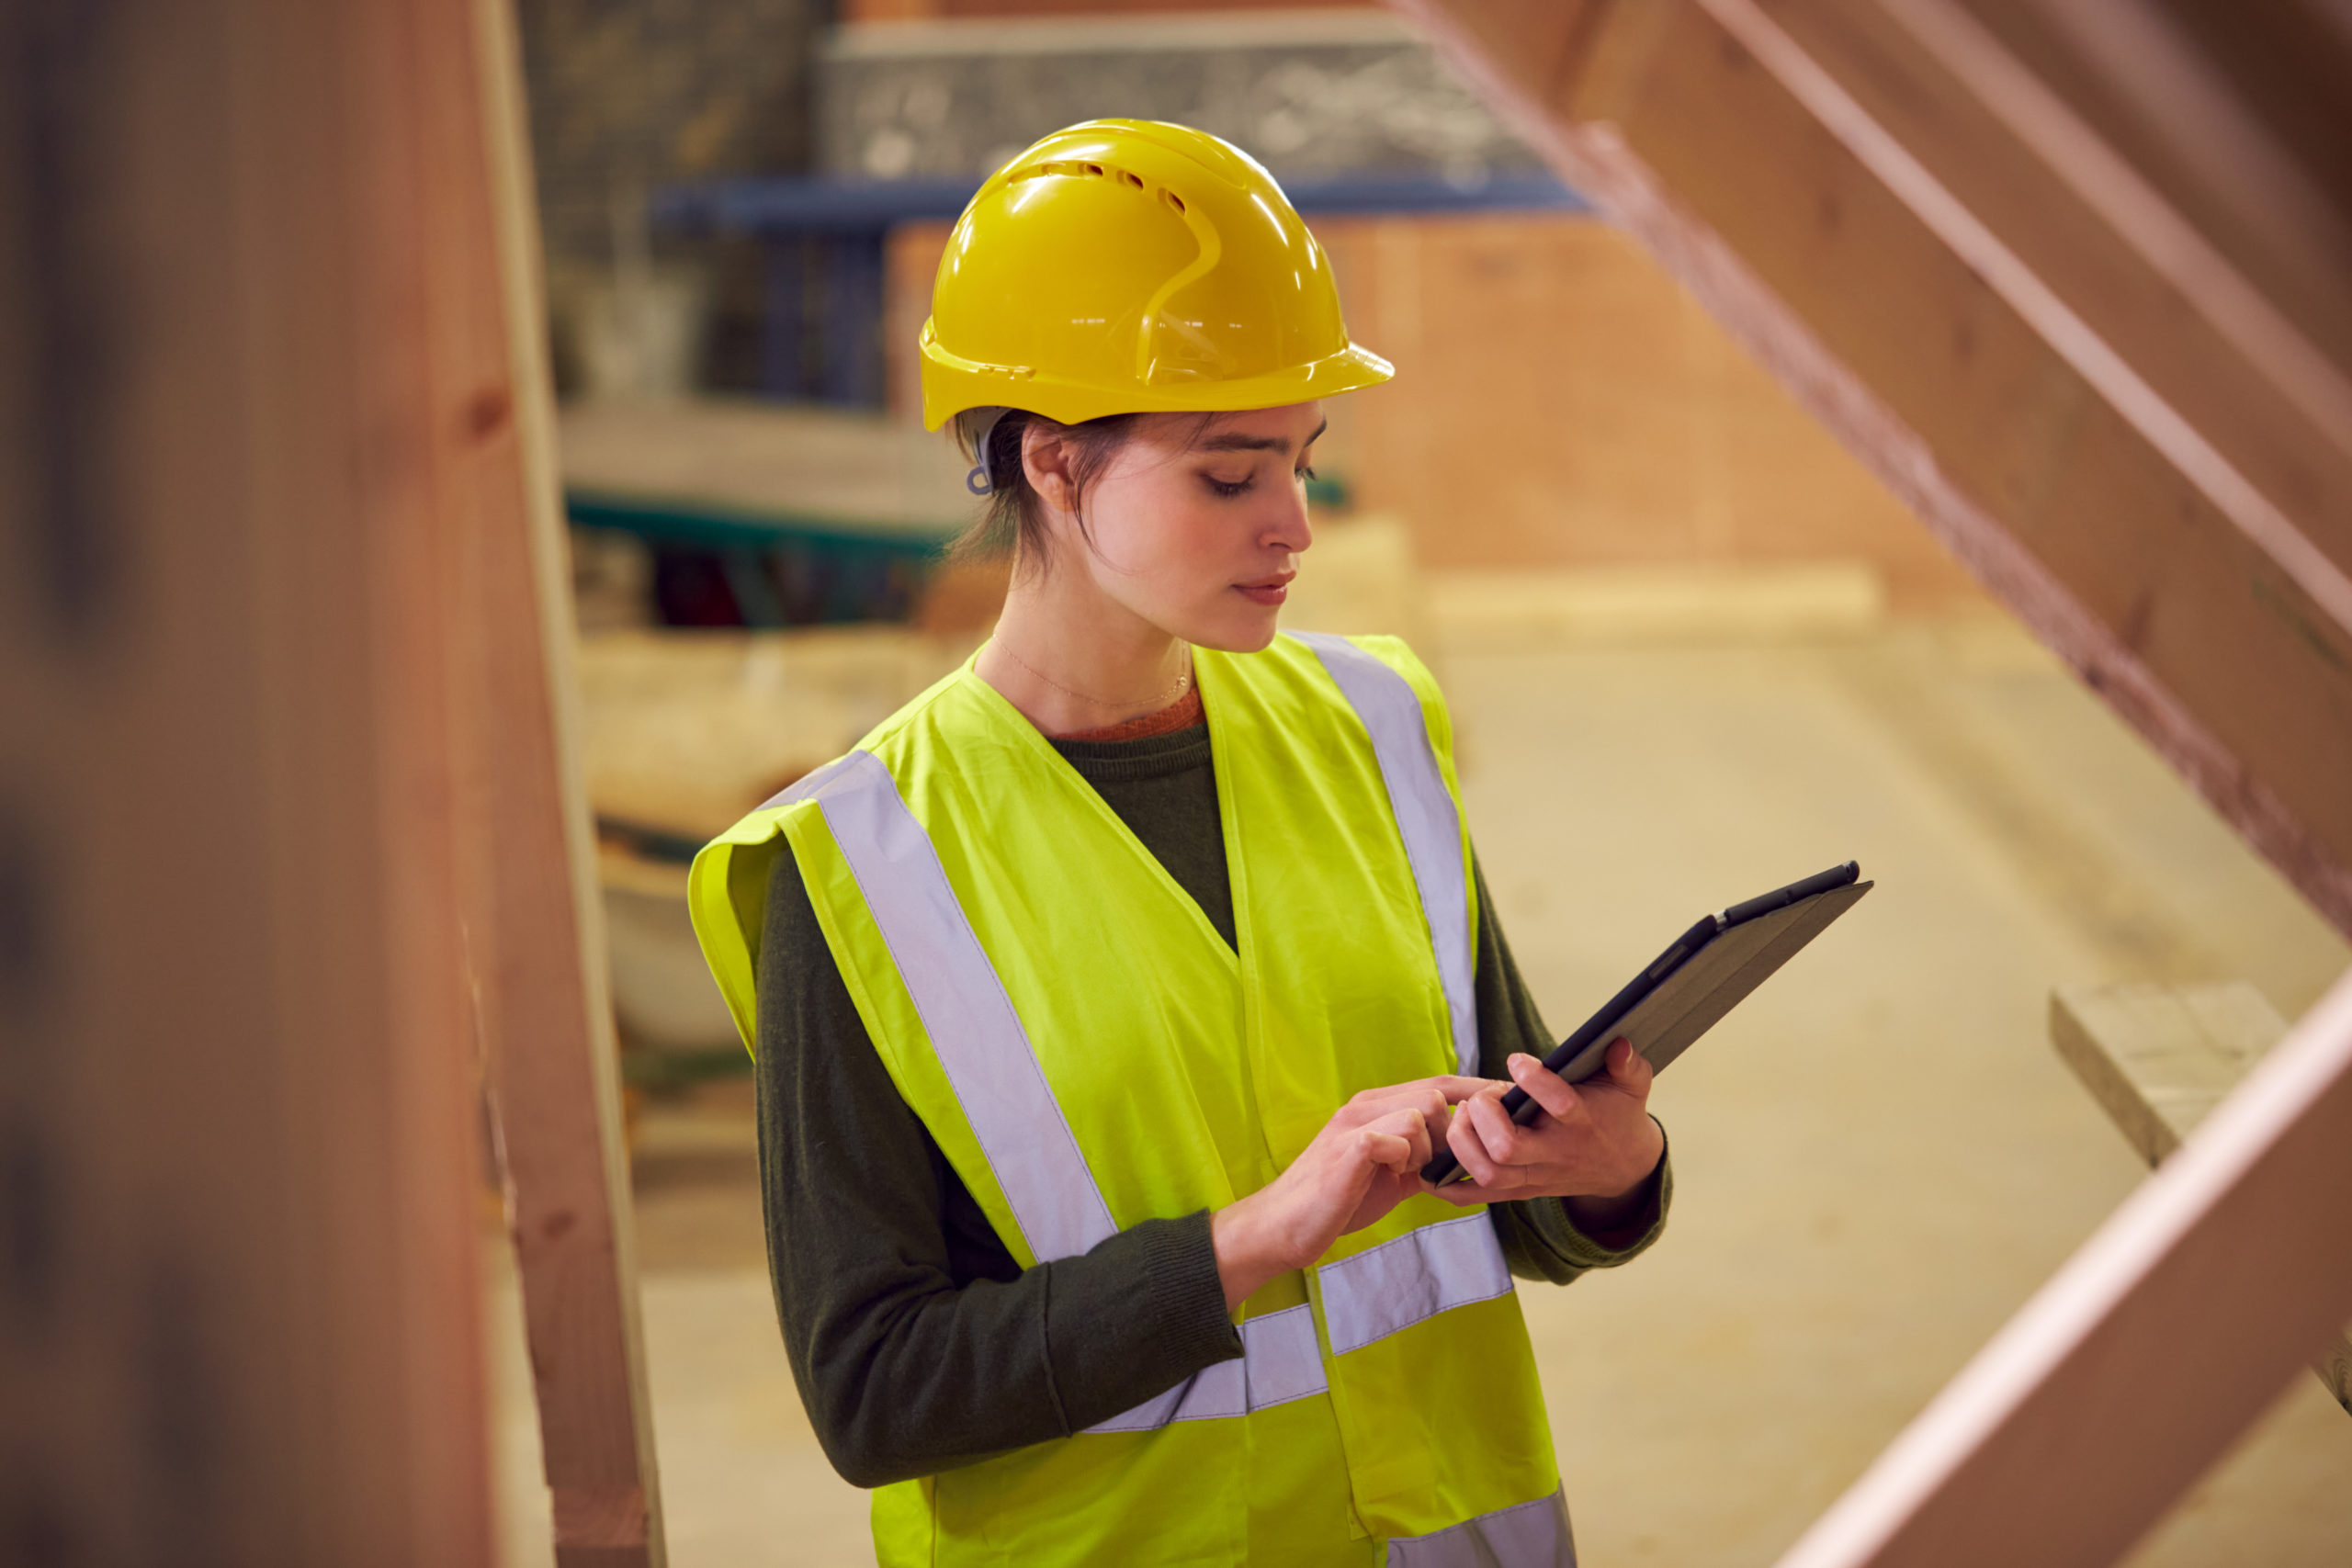 Types Of Home Inspections You Should Be Aware Of